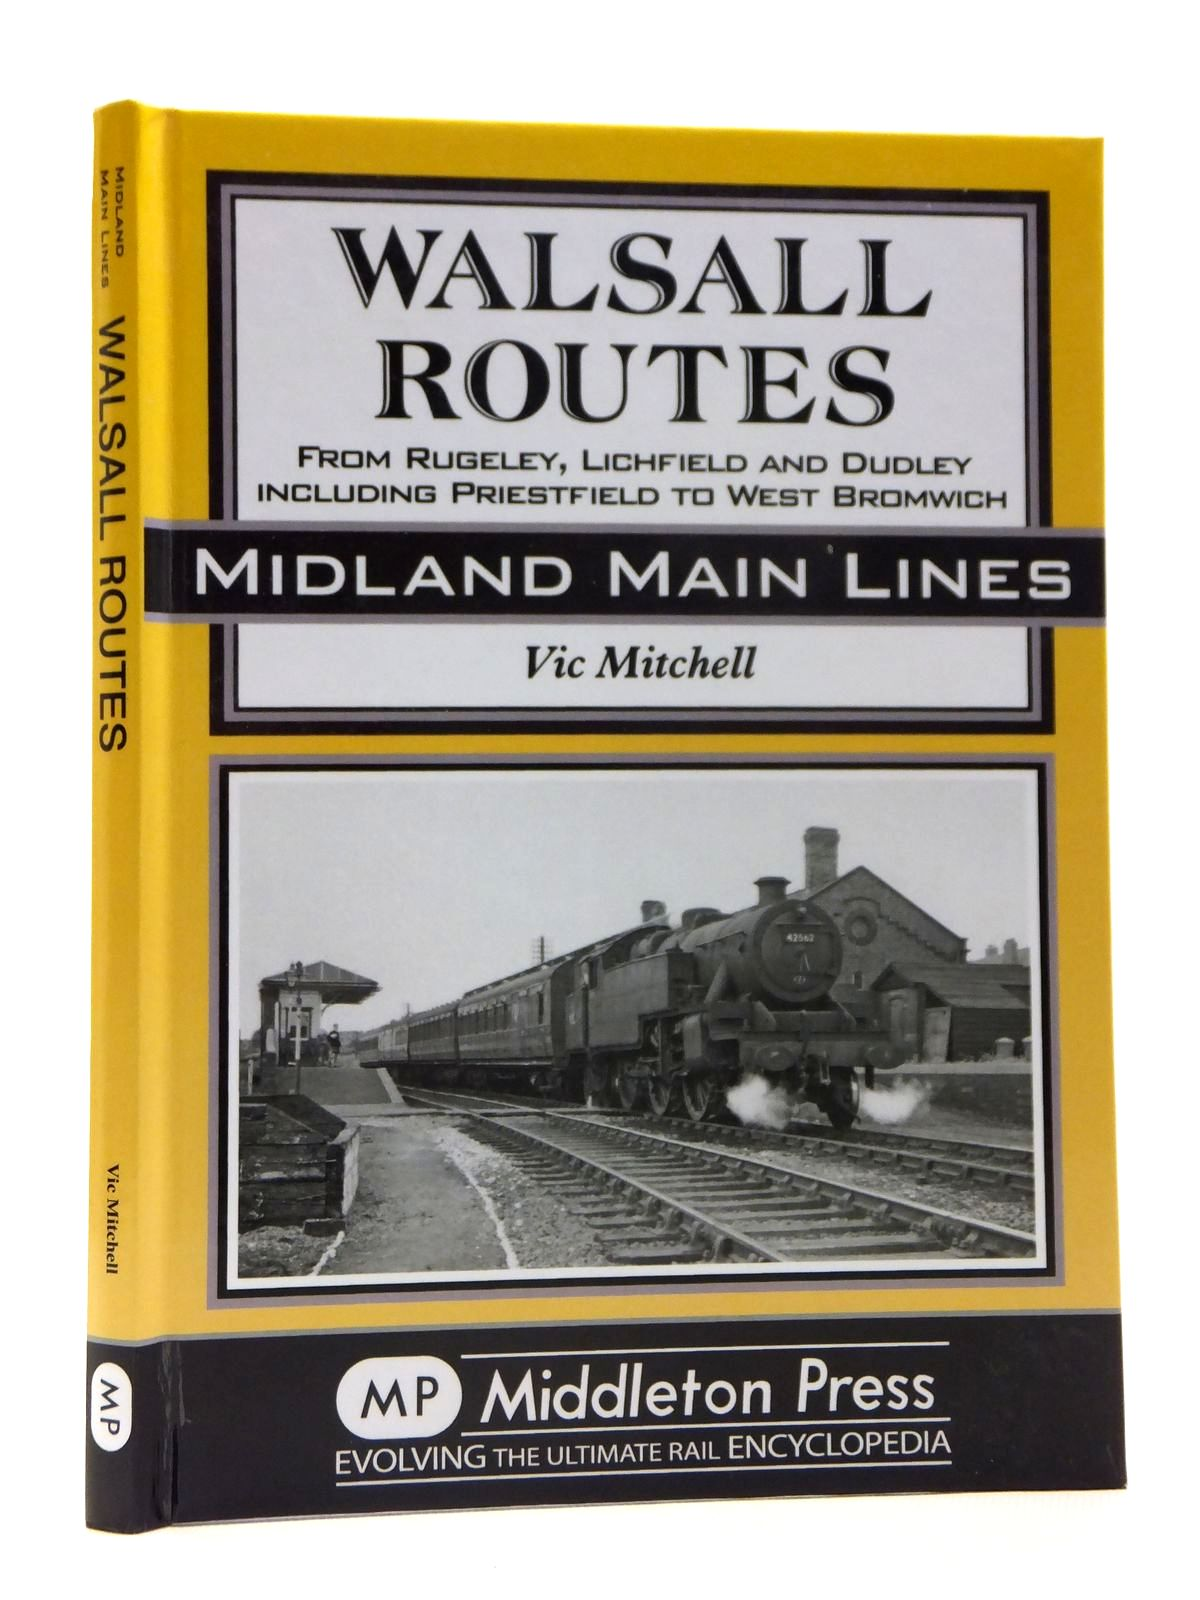 Photo of WALSALL ROUTES FROM RUGELEY, LICHFIELD AND DUDLEY INCLUDING PRIESTFIELD TO WEST BROMWICH (MIDLAND MAIN LINES) written by Mitchell, Vic published by Middleton Press (STOCK CODE: 2121352)  for sale by Stella & Rose's Books